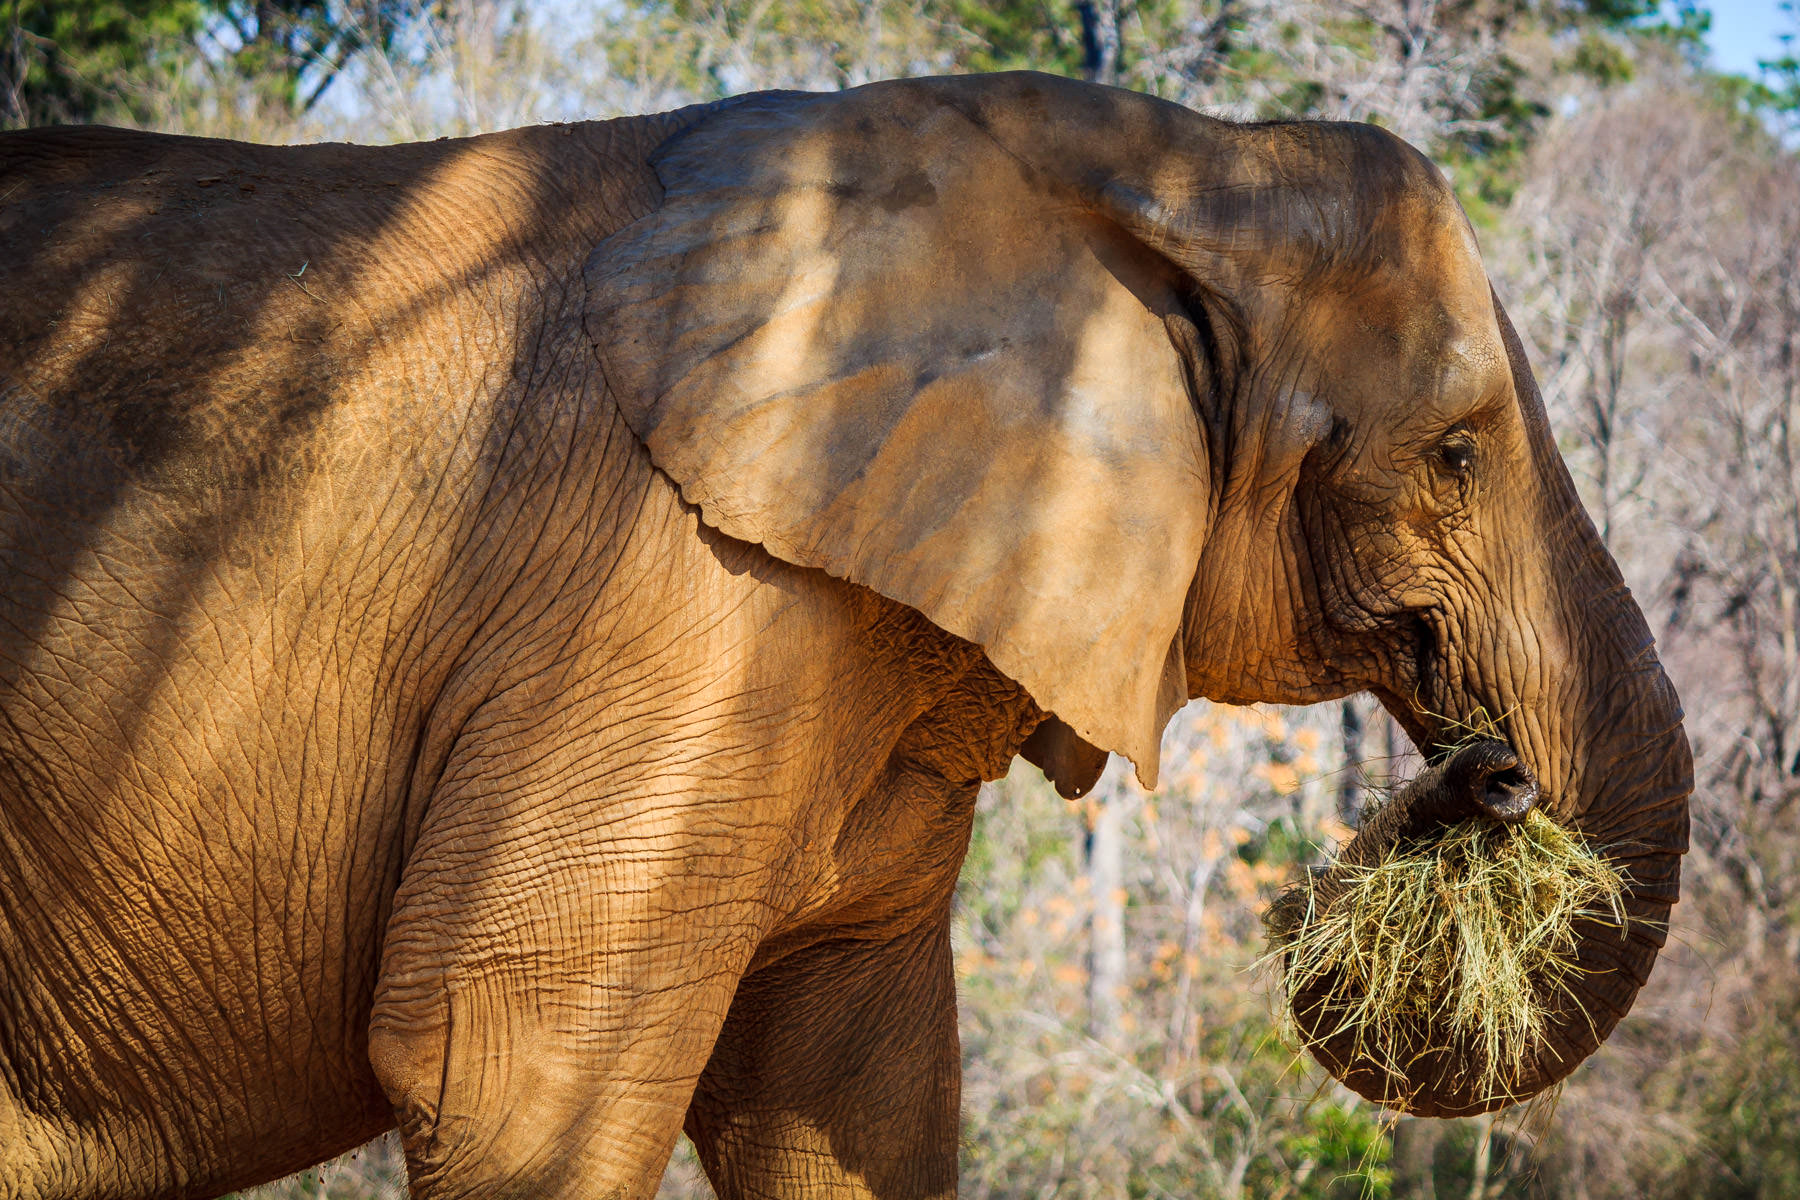 An elephant at Tyler, Texas' Caldwell Zoo enjoys a snack of hay.